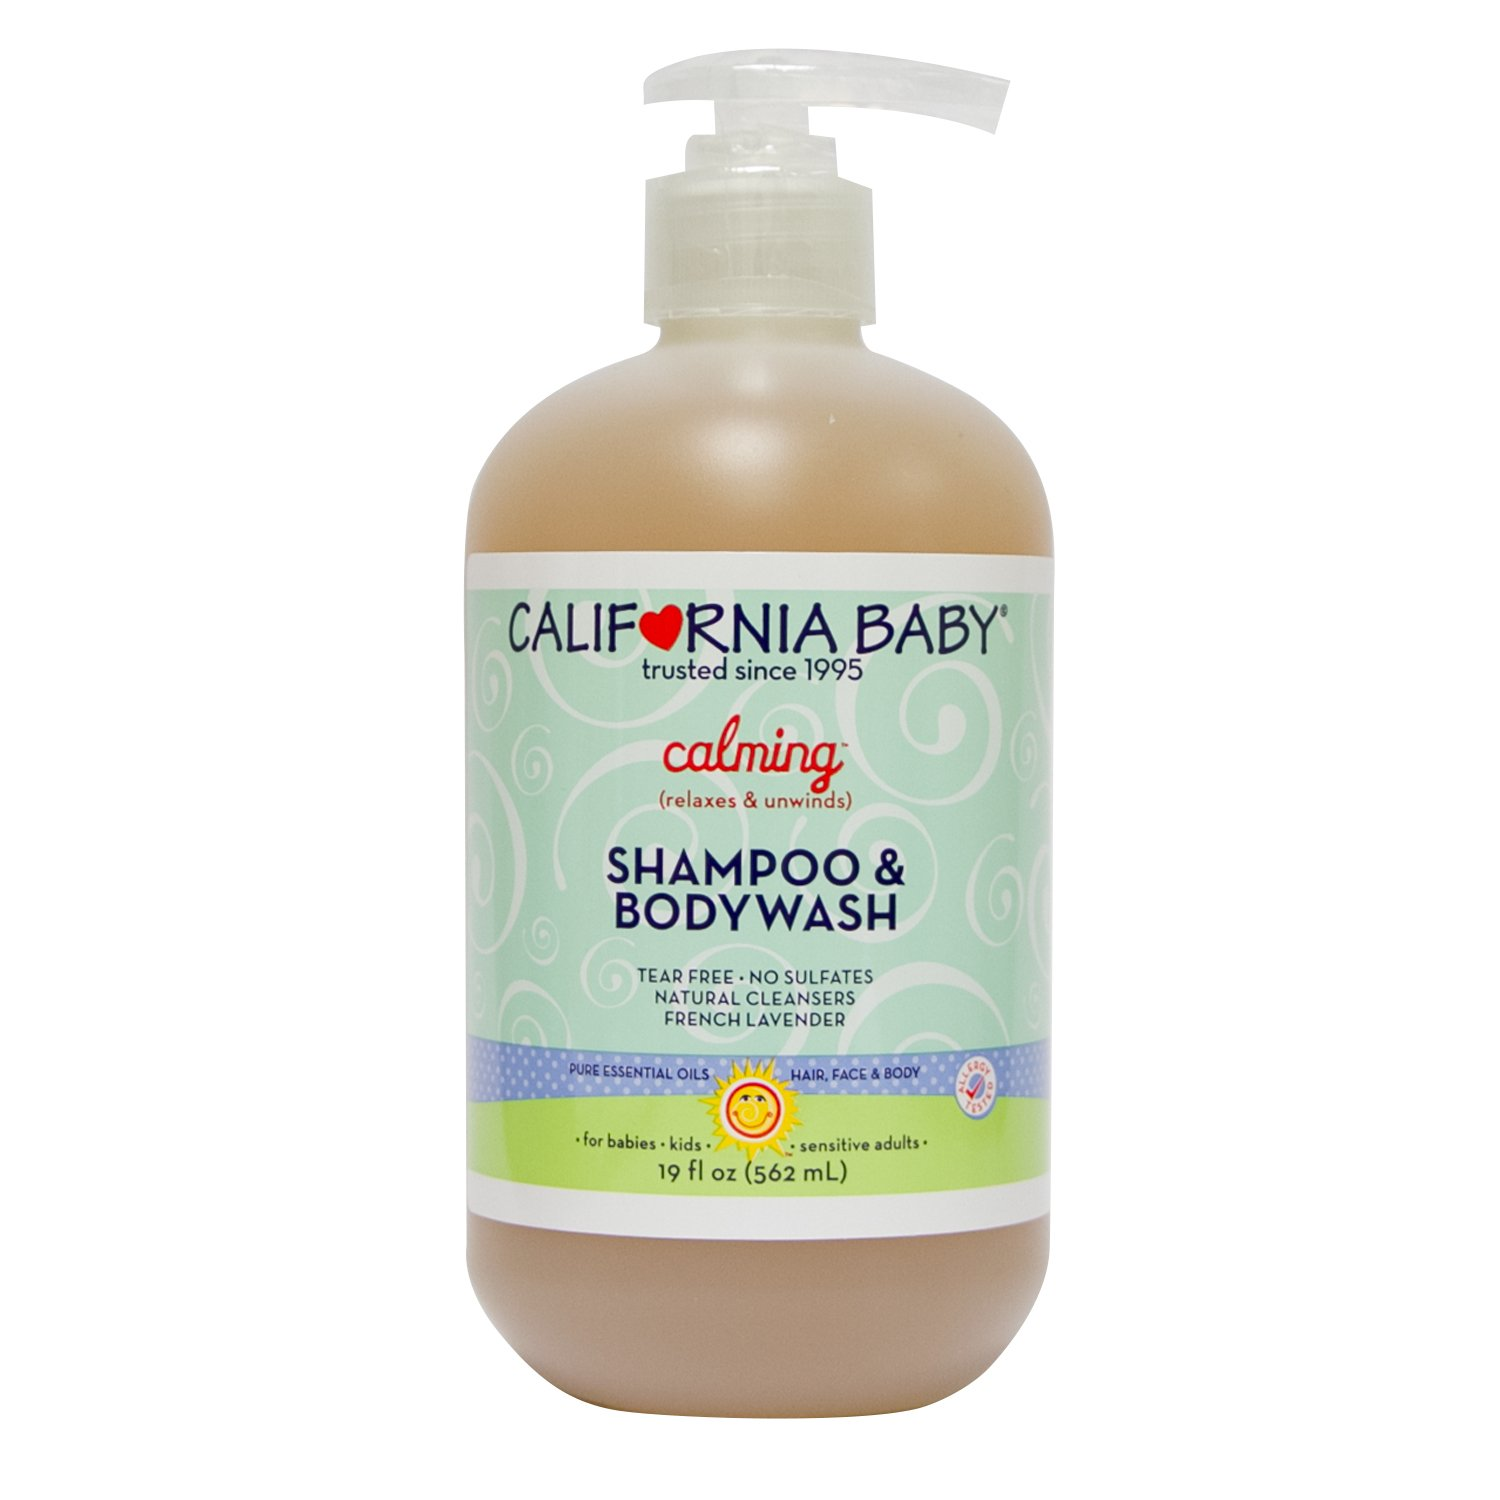 California Baby Calming Shampoo and Body Wash - Hair, Face, and Body | Gentle, No Fragrance, Allergy Tested | Dry, Sensitive Skin, 19 Ounces by California Baby